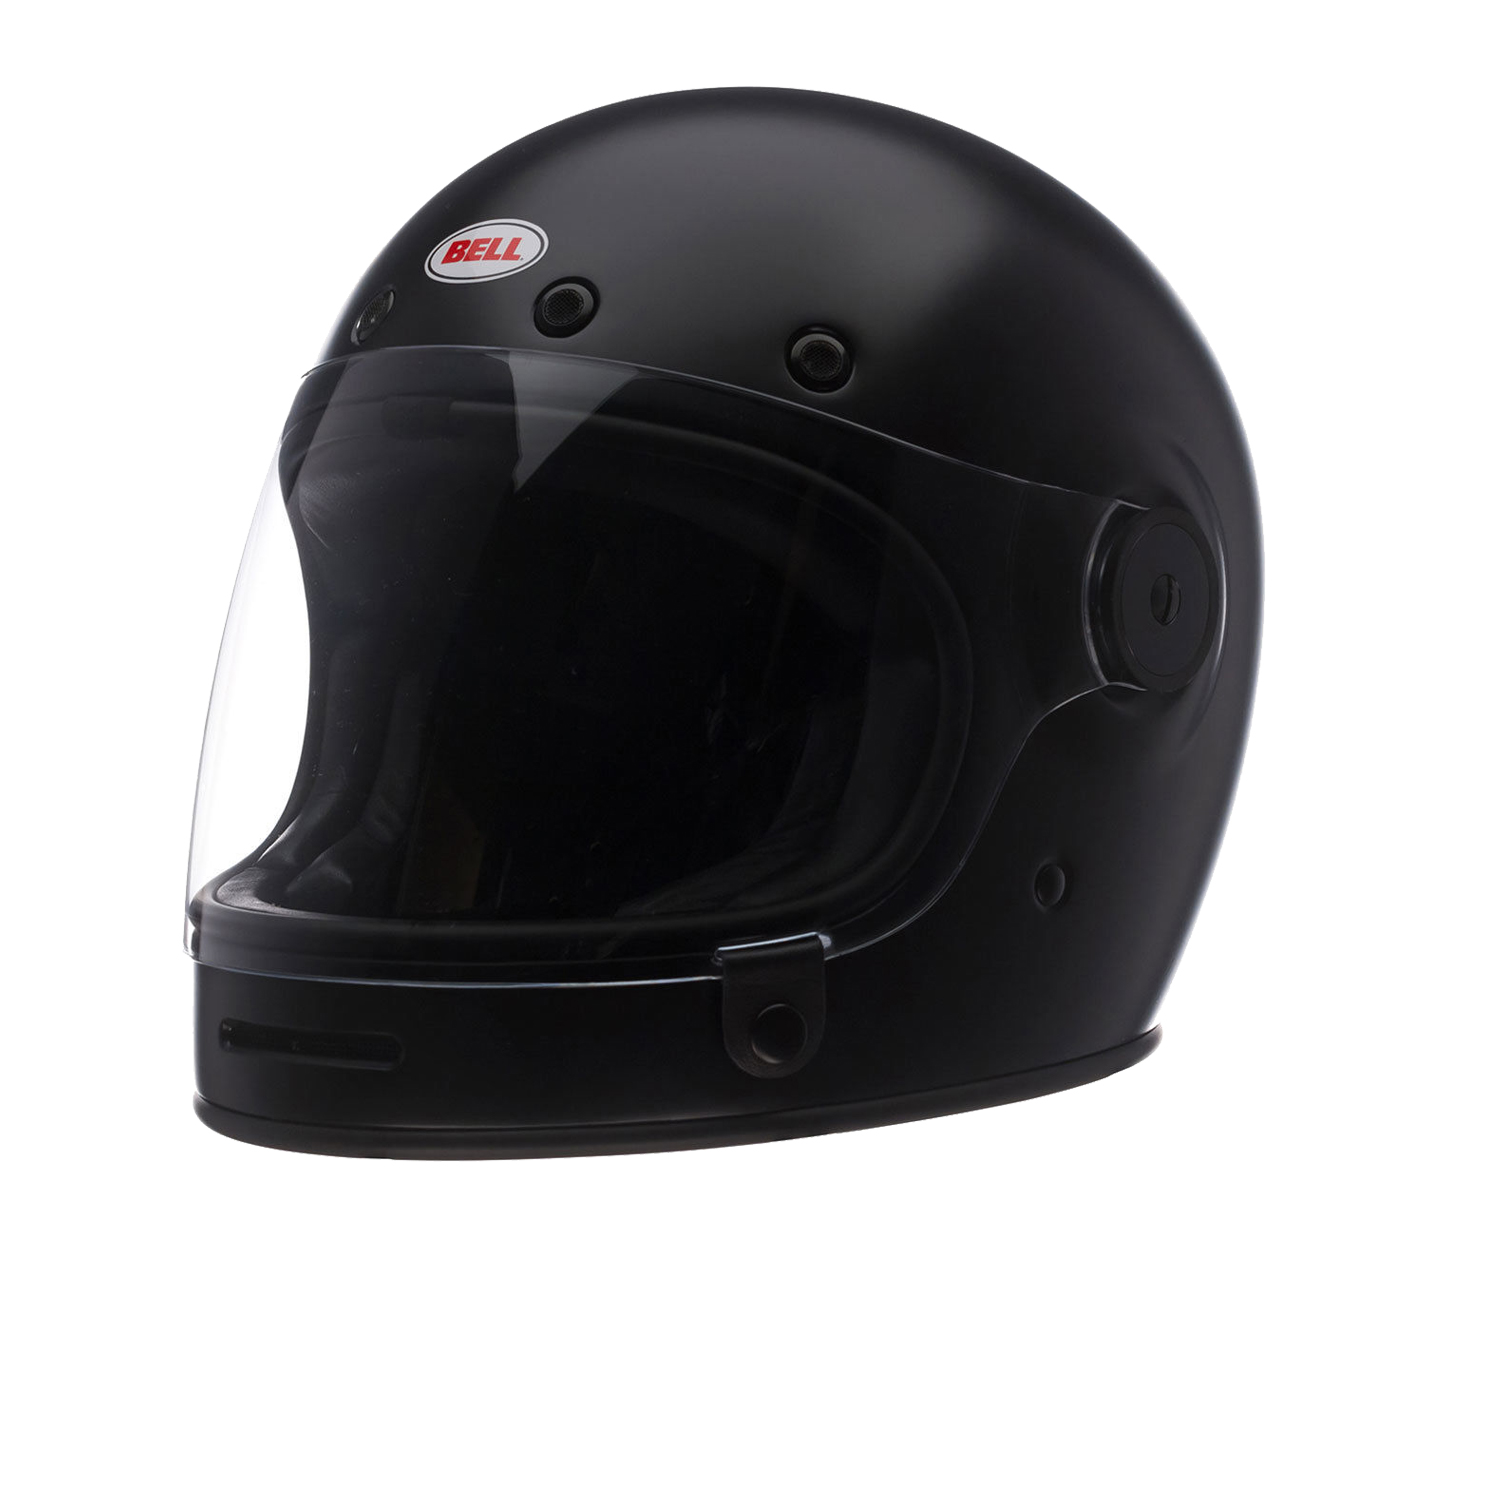 Casco helmet Bell Full Face Integrale BULLITT DLX Matt Black Cafe' Race moto